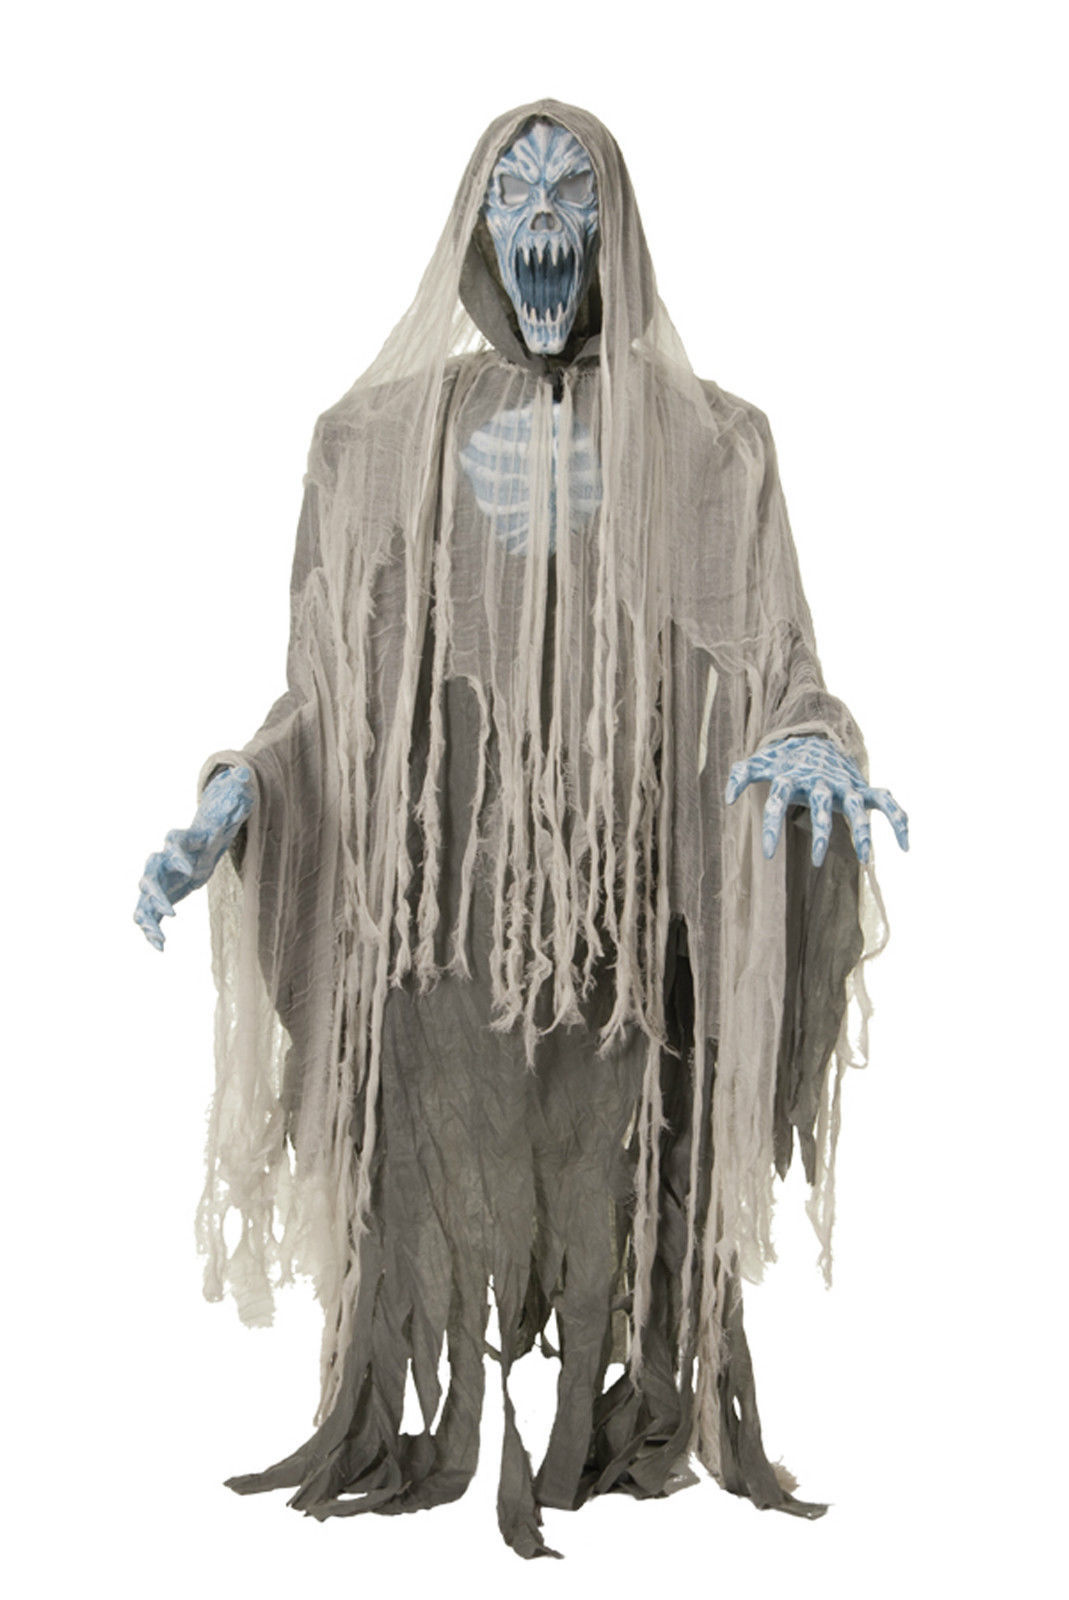 Life Size Animated EVIL ENTITY GHOST ZOMBIE Halloween Prop * Figure-8 Movement *